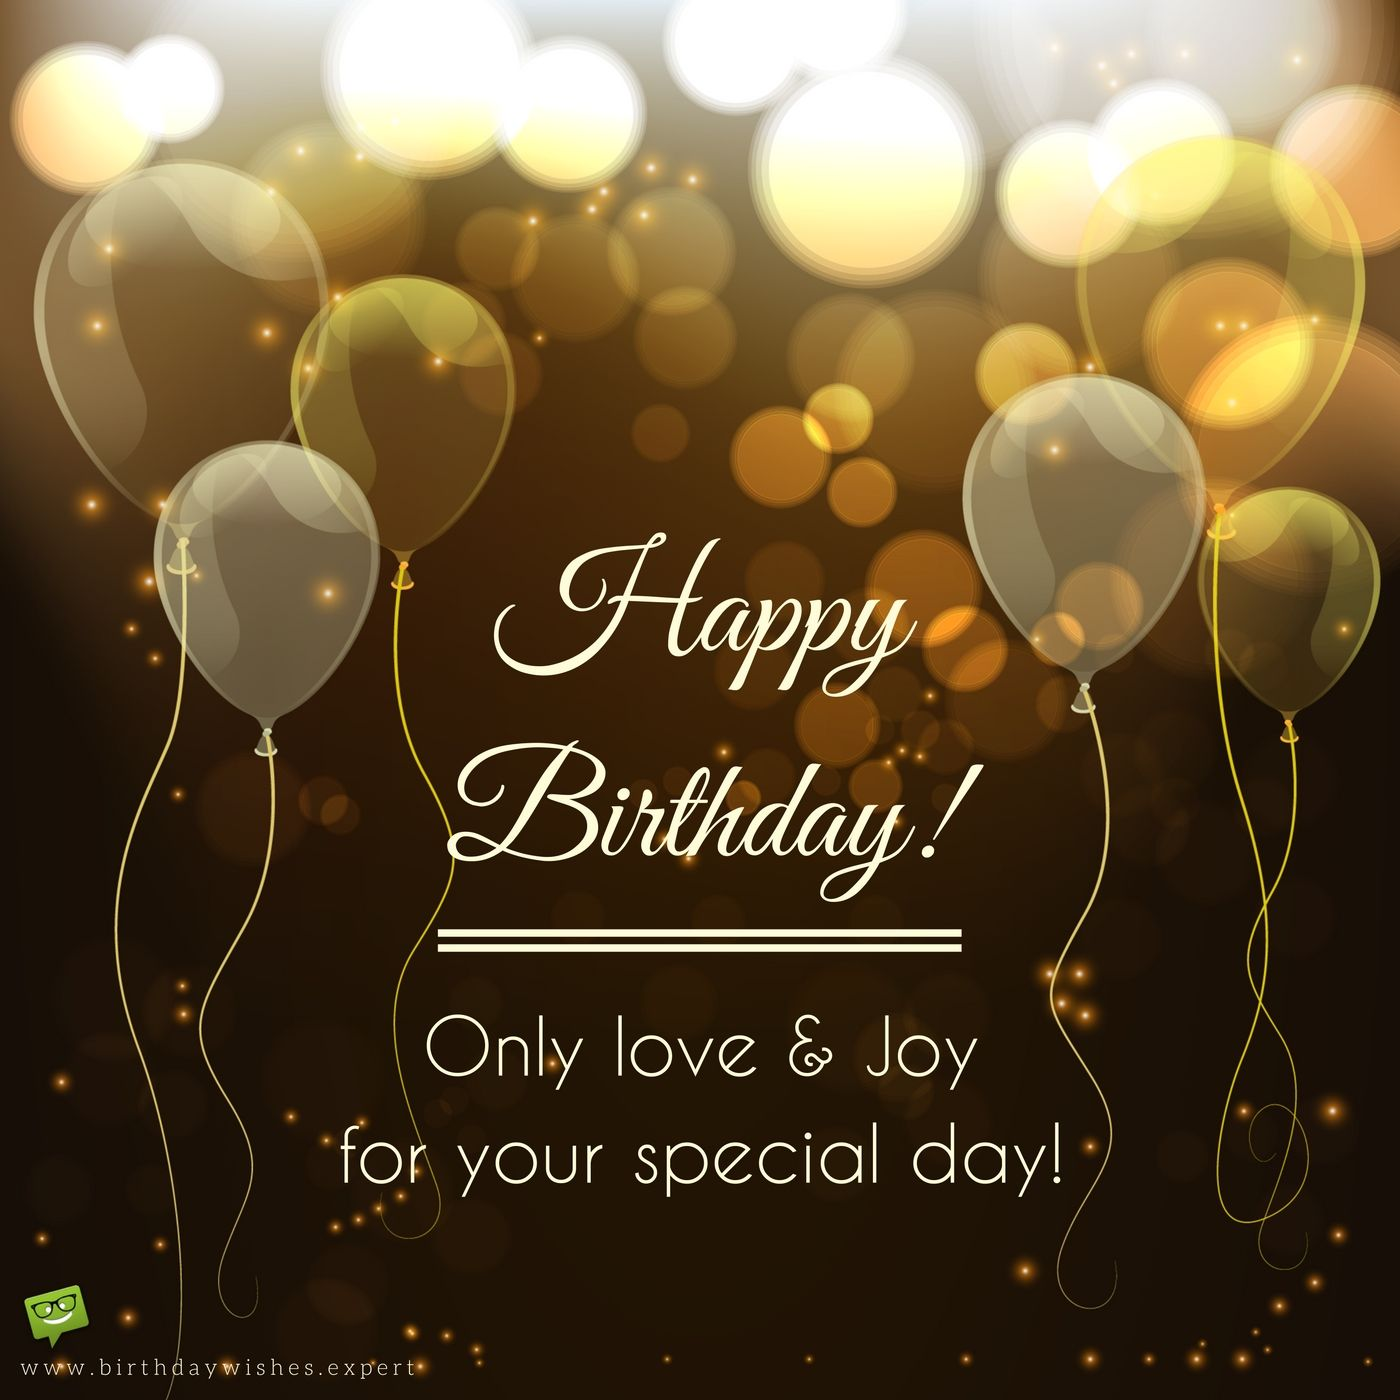 Top 100 Birthday Wishes for your friends Happy birthday